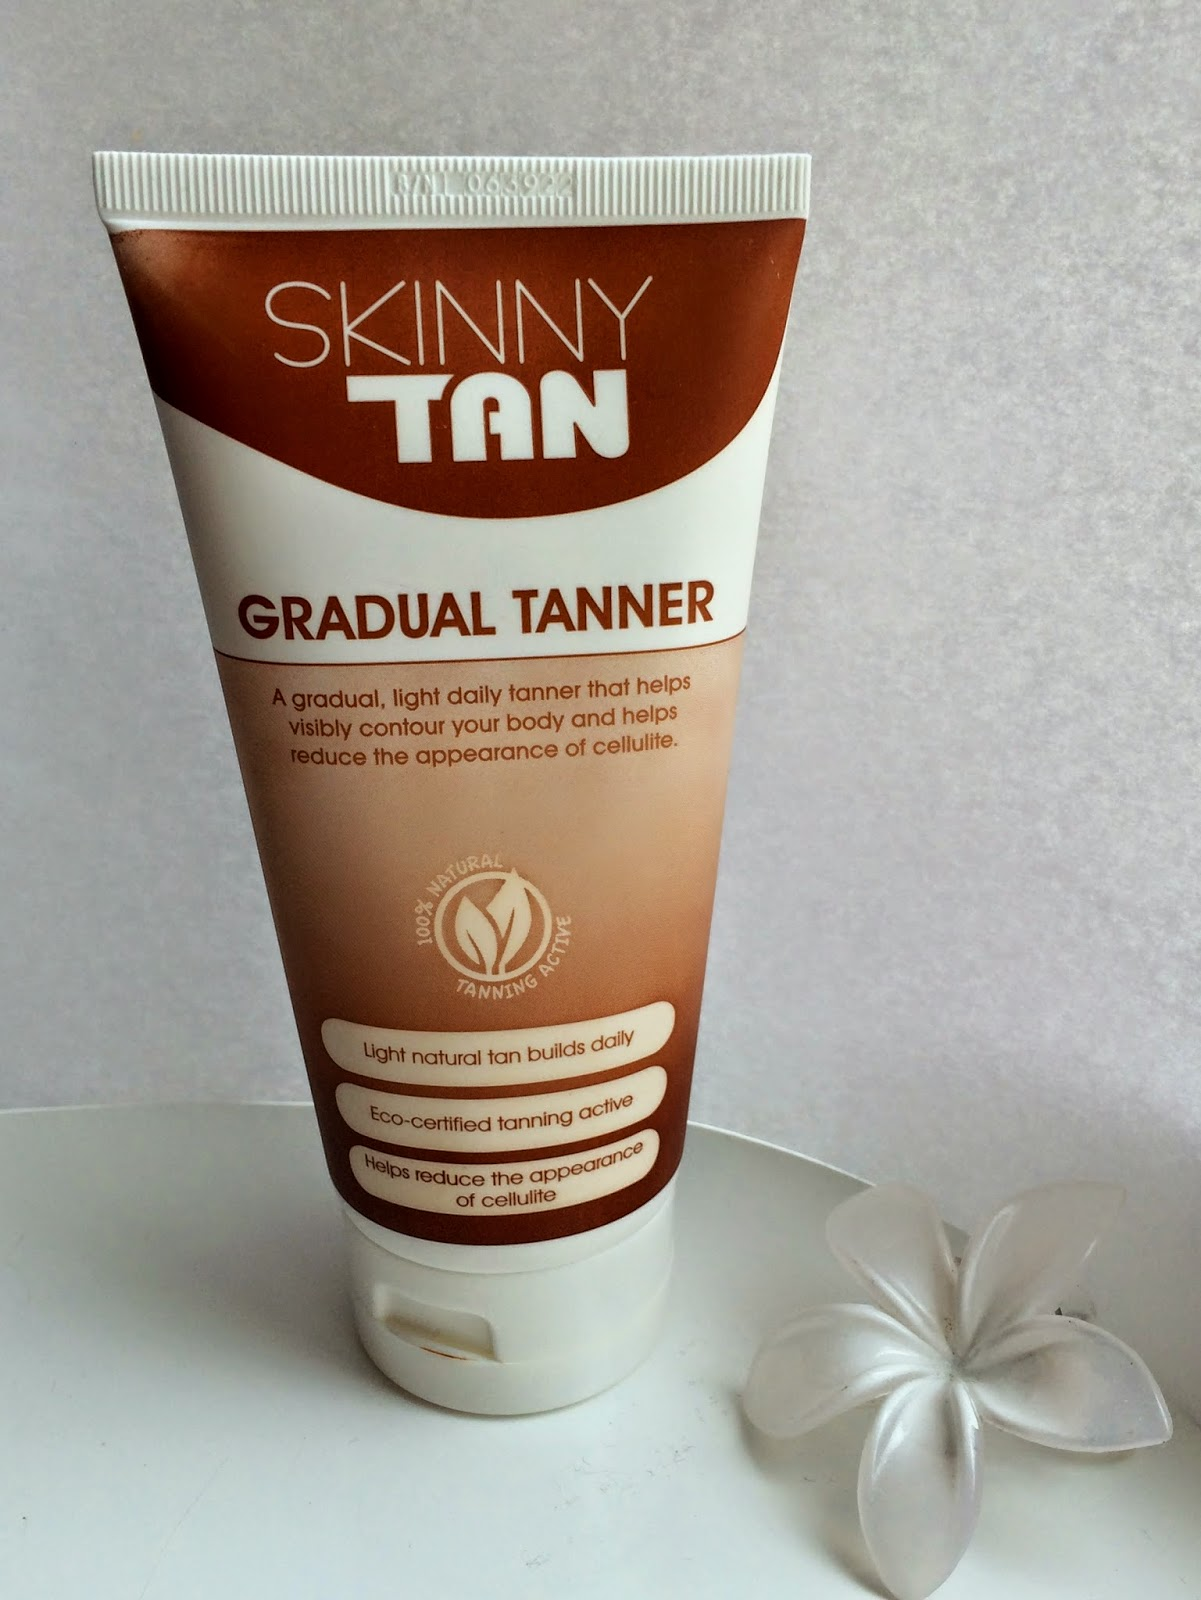 skinny-tan-gradual-tanner-review